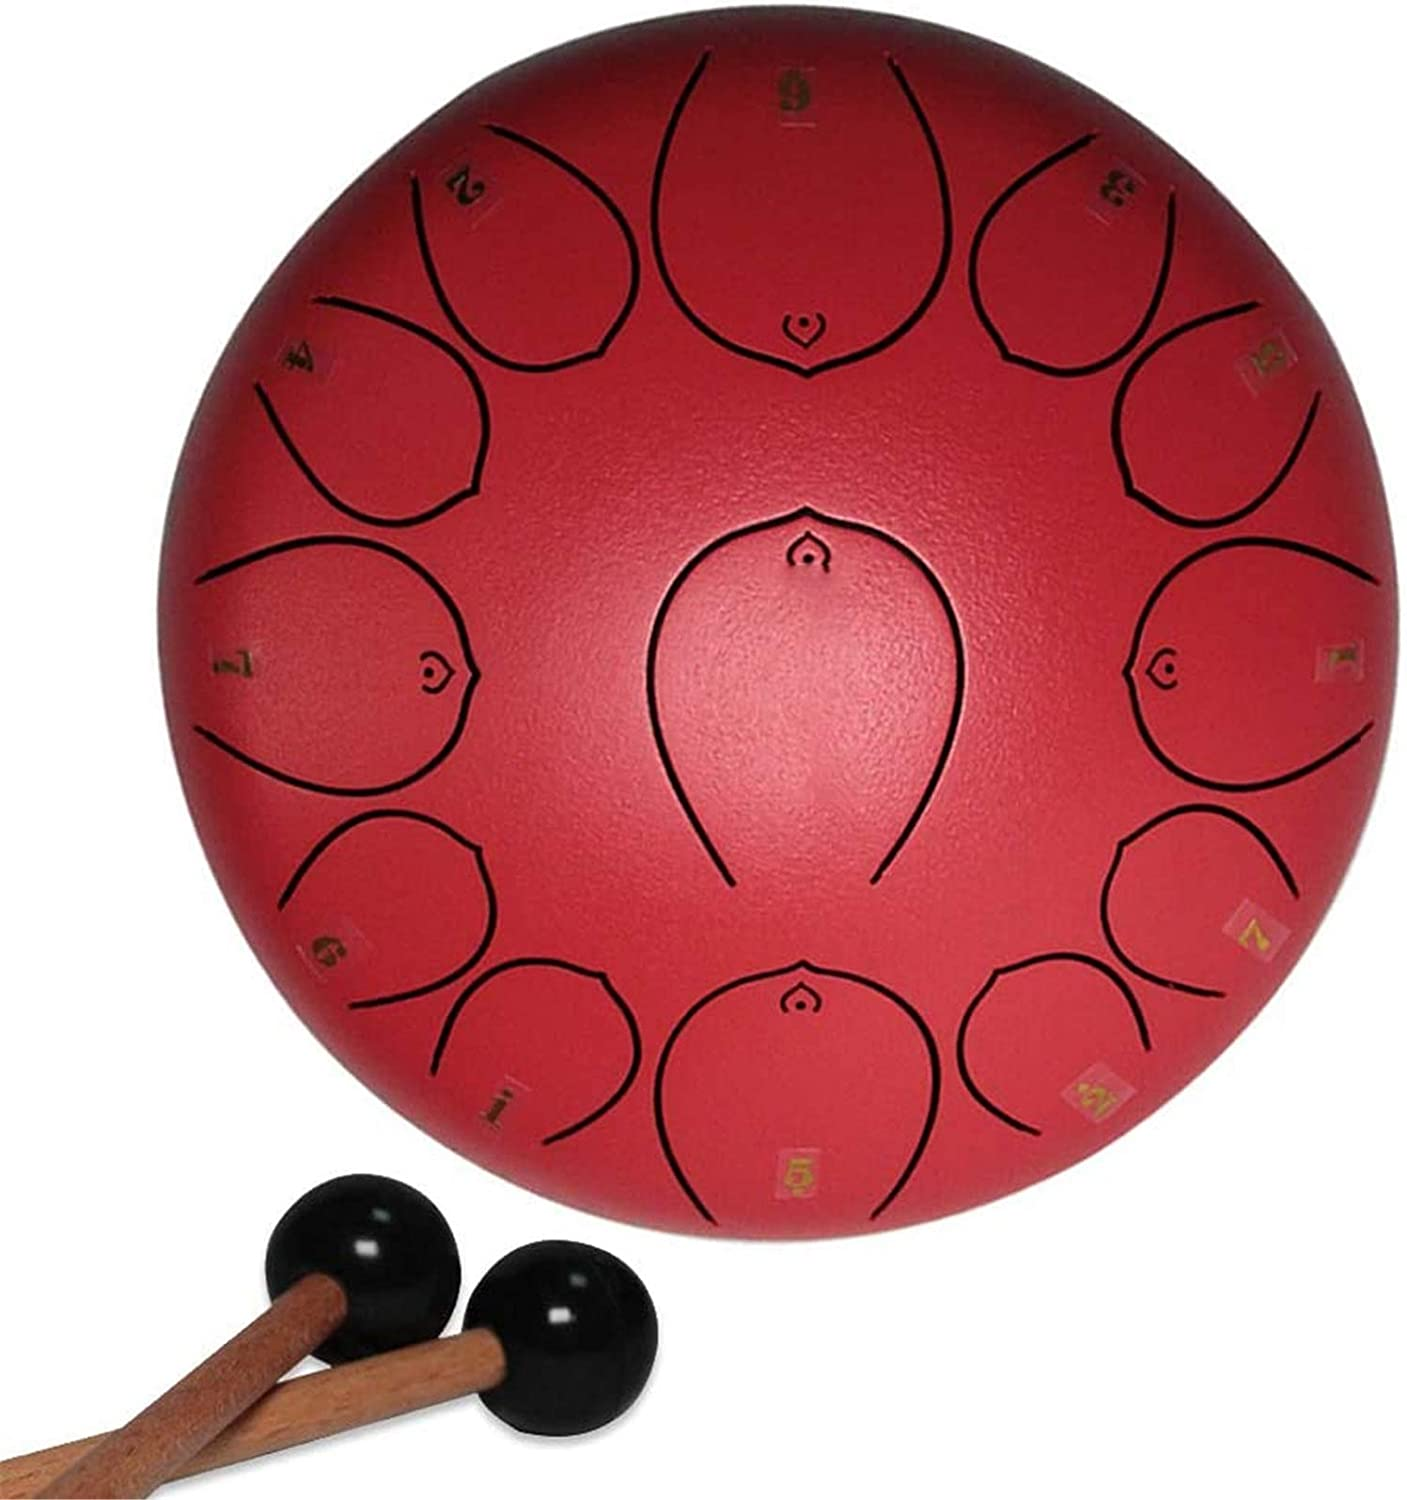 Steel Tongue Drum Handpan 12 Fees free 13 Luxury goods Inche Notes